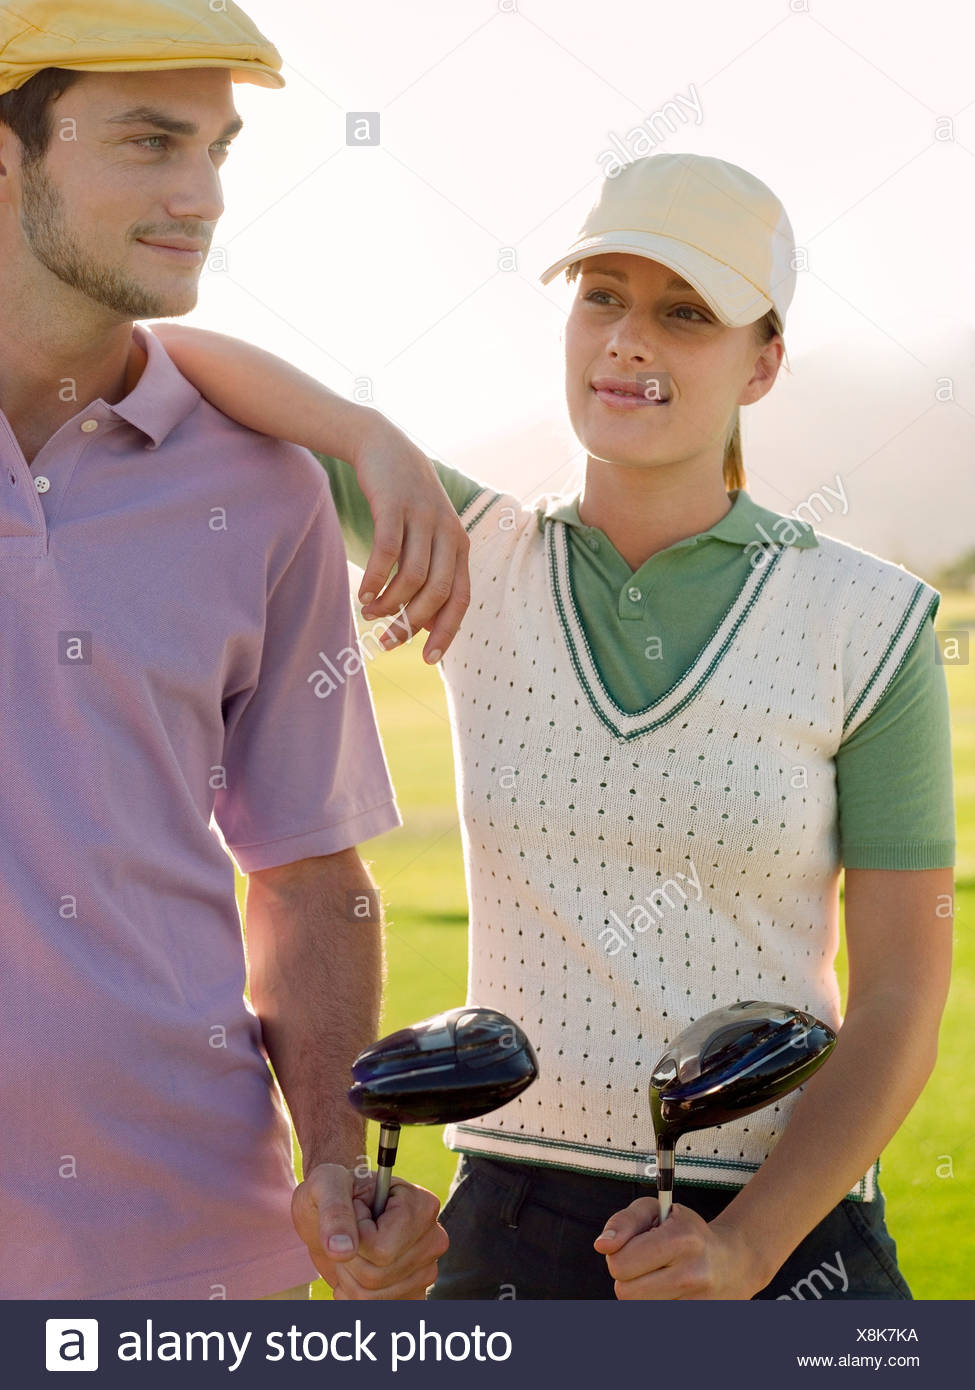 Two young golfers on court - Stock Image